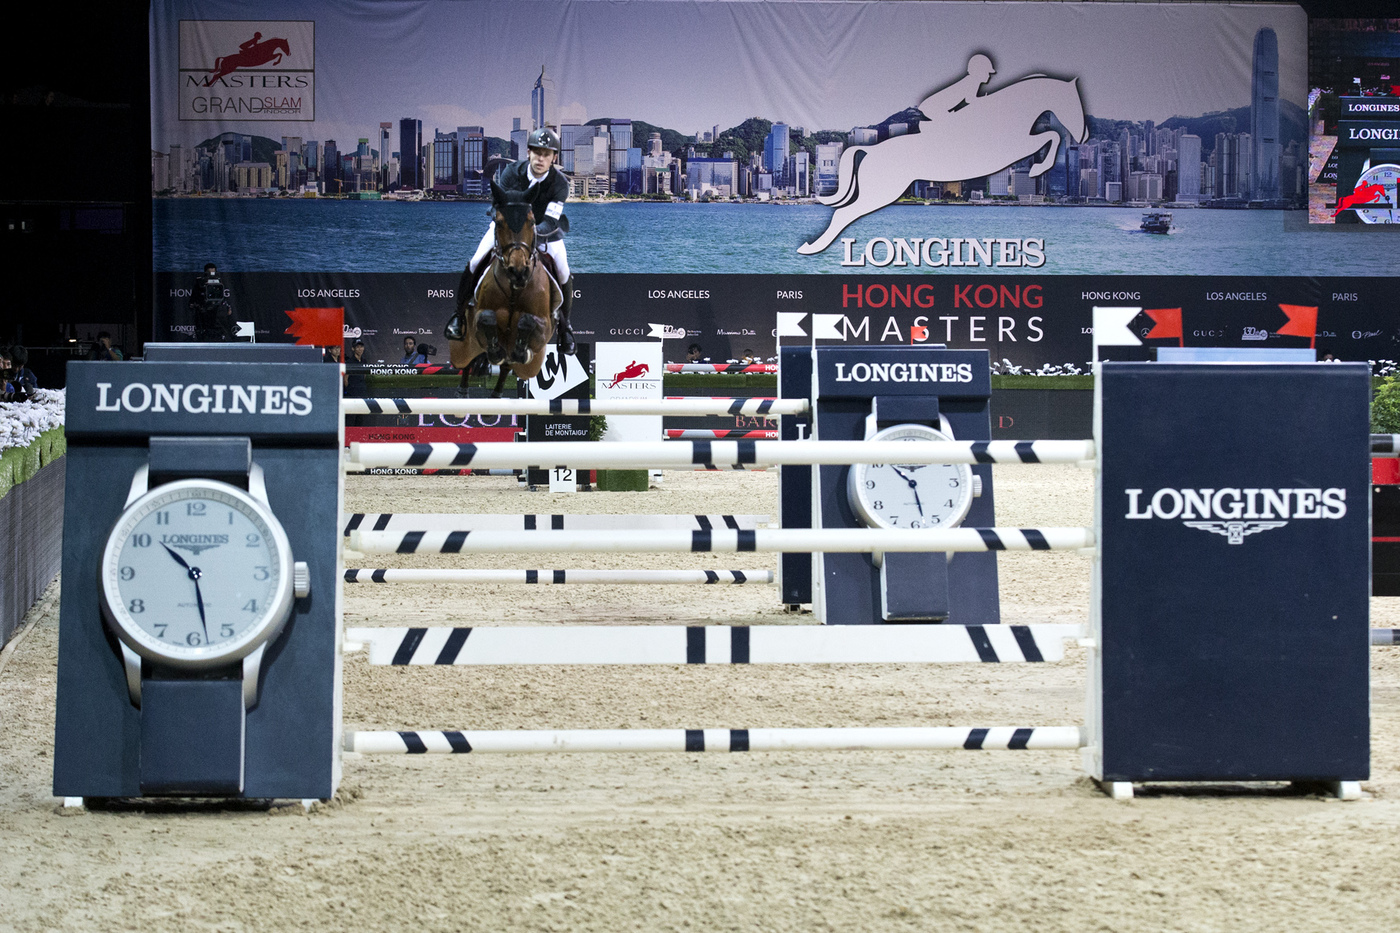 Longines Show Jumping Event: The Longines Hong Kong Masters: the most elegant way to take leave of the Year of the Horse 2